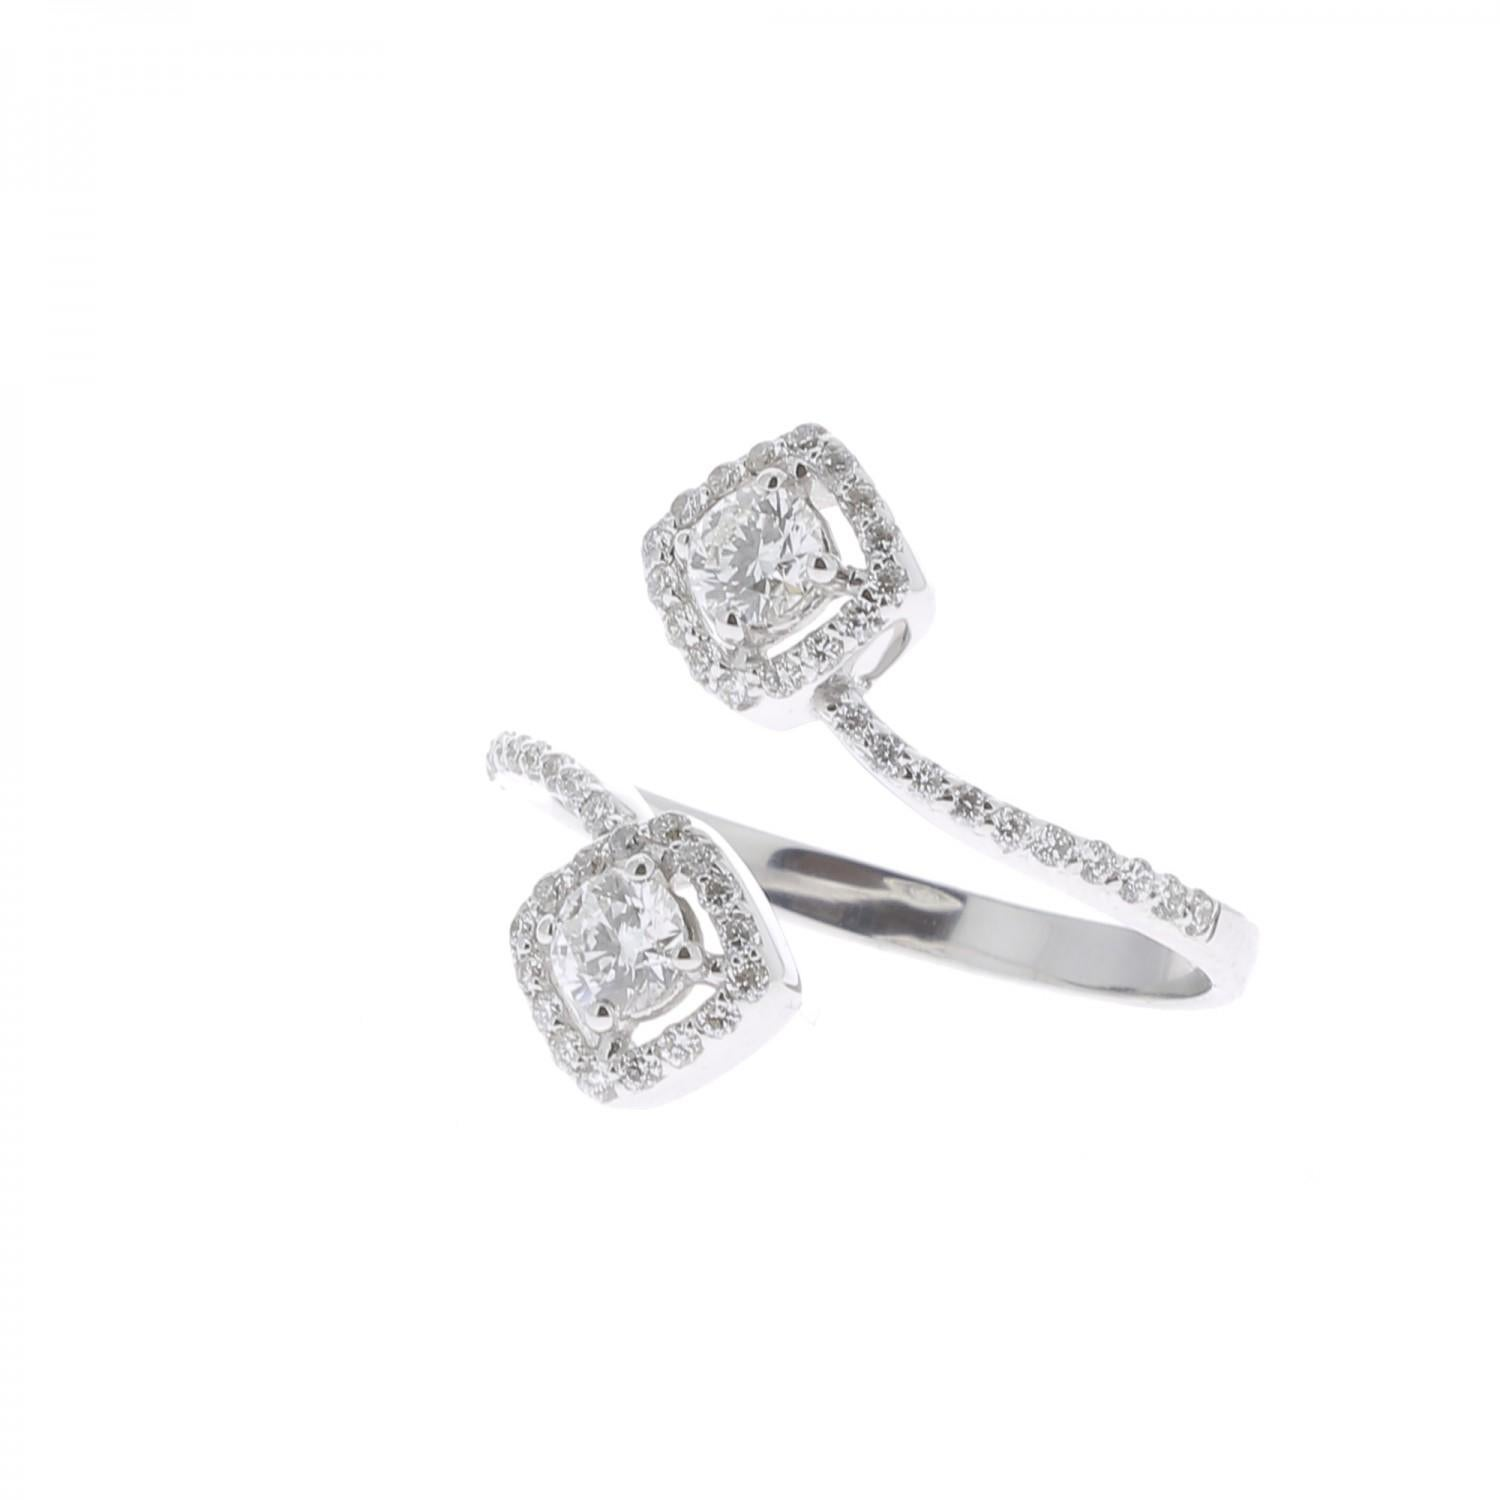 1fb719e6d247aa GVS 0.66 Carat Square Diamond Cocktail Ring 18 Karat White Gold Engagement  Rings For Sale at 1stdibs